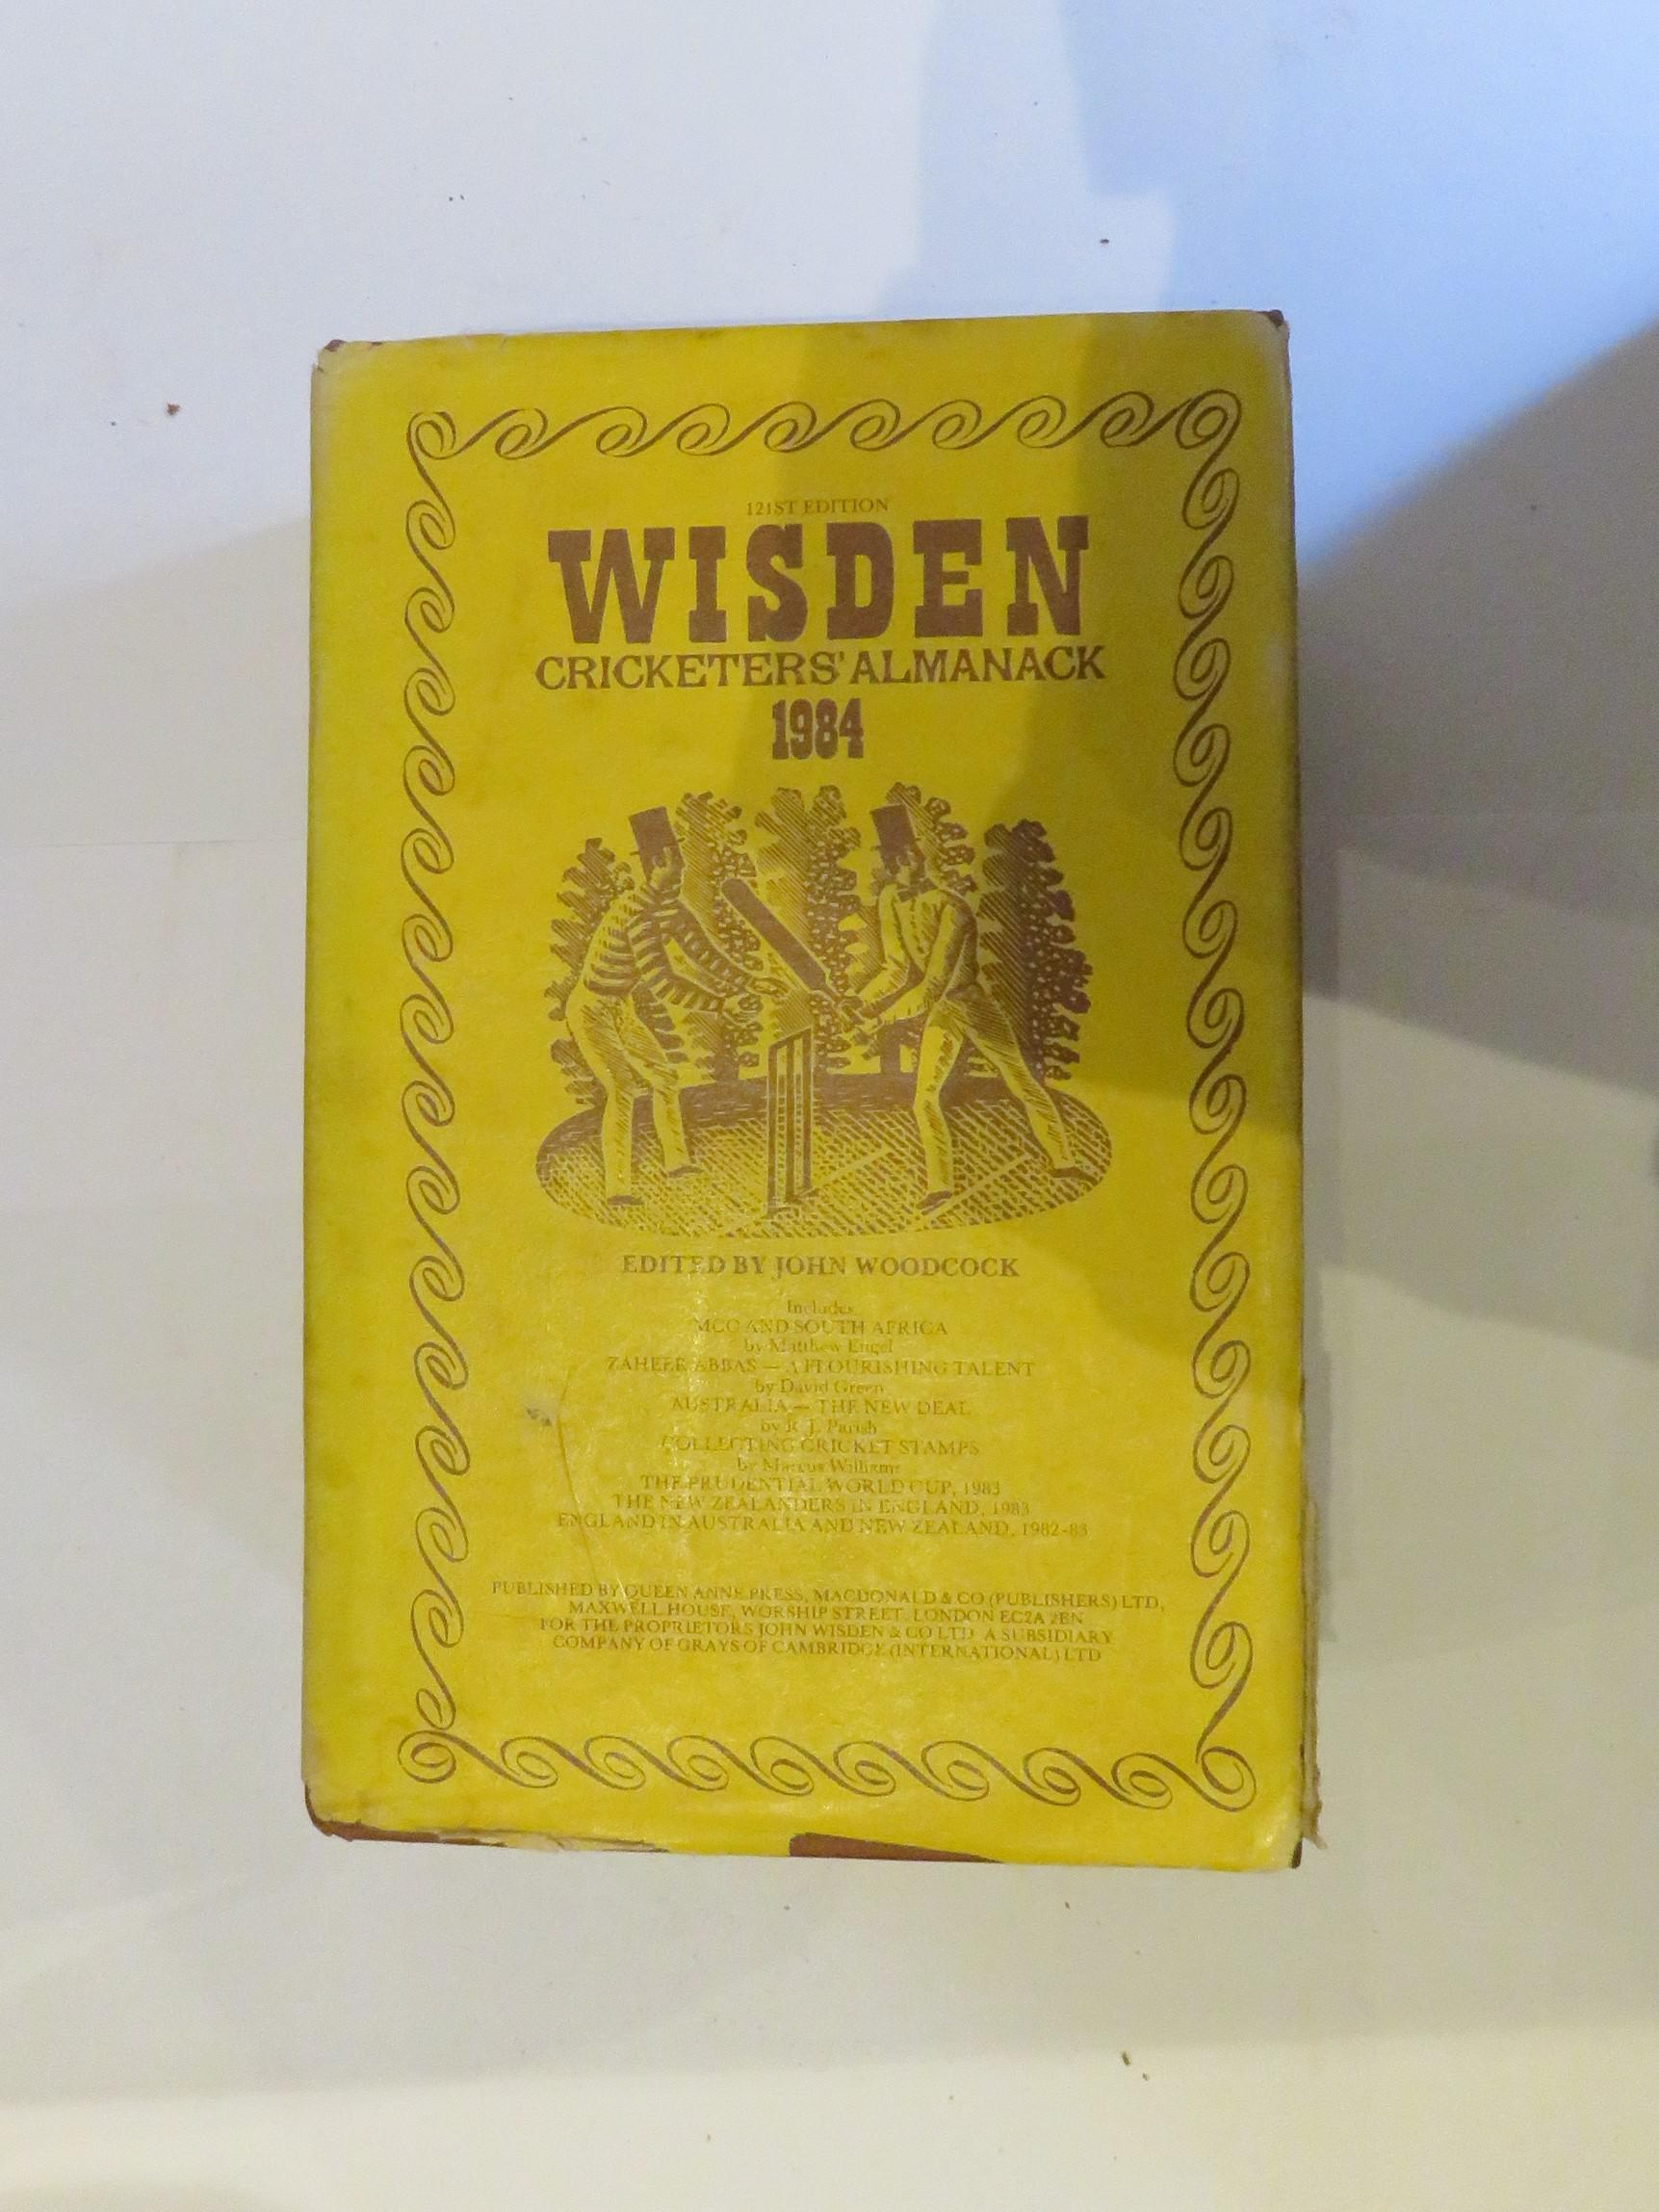 Wisden Cricketers' Alamnack 1984